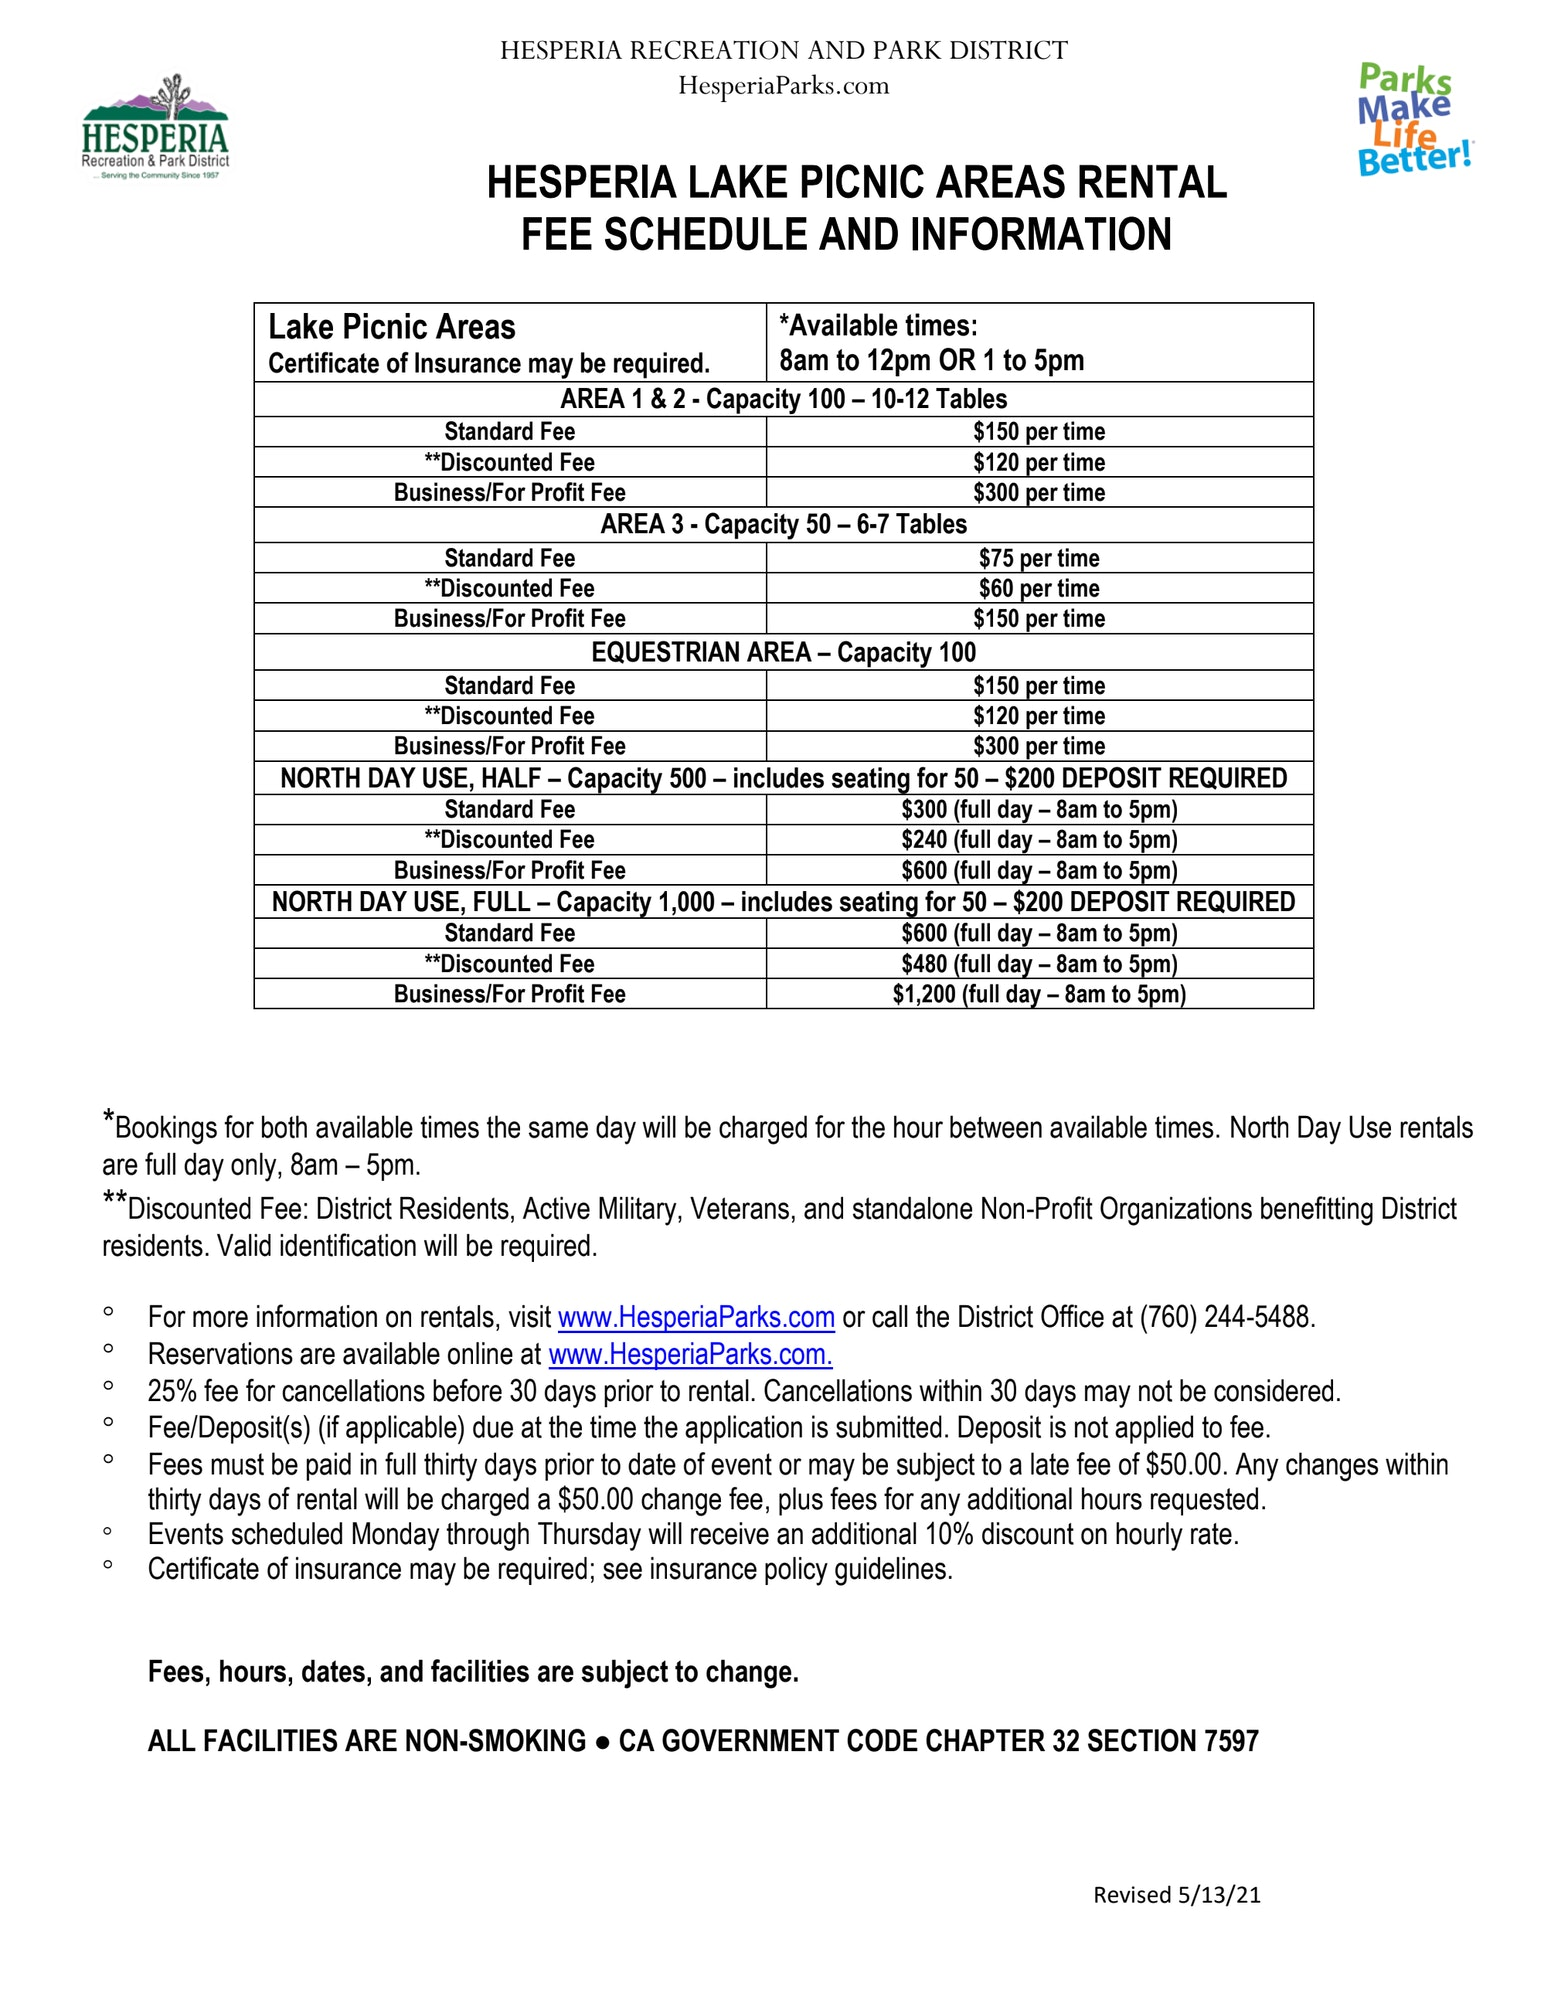 Hesperia Lake Picnic Area Rental Fee Schedule. Lake Picnic Areas. Certificate of Insurance may be required. *Available times: 8 am to 12 pm OR 1 to 5 pm. Area 1 &2 capacity 100 with 10 to 12 tables. Standard fee $150 per time. **Discounted fee $120 per time. Business/For Profit fee $300 per time. Area 3 capacity 50 with 6 to 7 tables. Standard fee $75 per time. **Discounted fee $60 per time. Business/For Profit fee $150 per time. Equestrian Area capacity 100. Standard fee $150 per time. **Discounted fee $120 per time. Business/ For Profit $300 per time. North Day Use, half capacity 500 includes seating for 50 with $200 DEPOSIT REQURIED. Standard fee $300 (full day 8 am to 5 pm). **Discounted fee $240 (full day 8 am to 5 pm). Business/ For Profit $600 (full day 8 am to 5 pm). North Day Use, Full capacity 1,000 includes seating for 50 with $200 DEPOSIT REQUIRED. Standard fee $600 (full day 8 am to 5 pm). **Discounted fee $480 (full day 8 am to 5 pm). Business/For Profit $1,200 (full day 8 am to 5 pm). *Bookings for both available times the same day will be charged for the hour between available times. North day use rentals are full day only, 8 am to 5 pm. **Discounted fee: District residents, active military, veterans, and standalone non-profit organizations benefiting District residents. Valid identification required. For more information on rentals, visit www.hesperiaparks.com or call the District office at (760)244-5488. Reservations are available online at www.hesperiaparks.com. 25% fee for cancellations before 30 days prior to rental. Cancellations within 30 days may not be considered. Fee/deposit(s) (if applicable) due at the the time the application is submitted. Deposit is not applied to fee. Fees must be paid in full 30 days prior to date of event or may be subject to late fee of $50.00. Any changes within 30 days of rental will be charged a $50.00 change fee, plus fees for an additional hours requested. Events scheduled Monday through Thursday will receive a